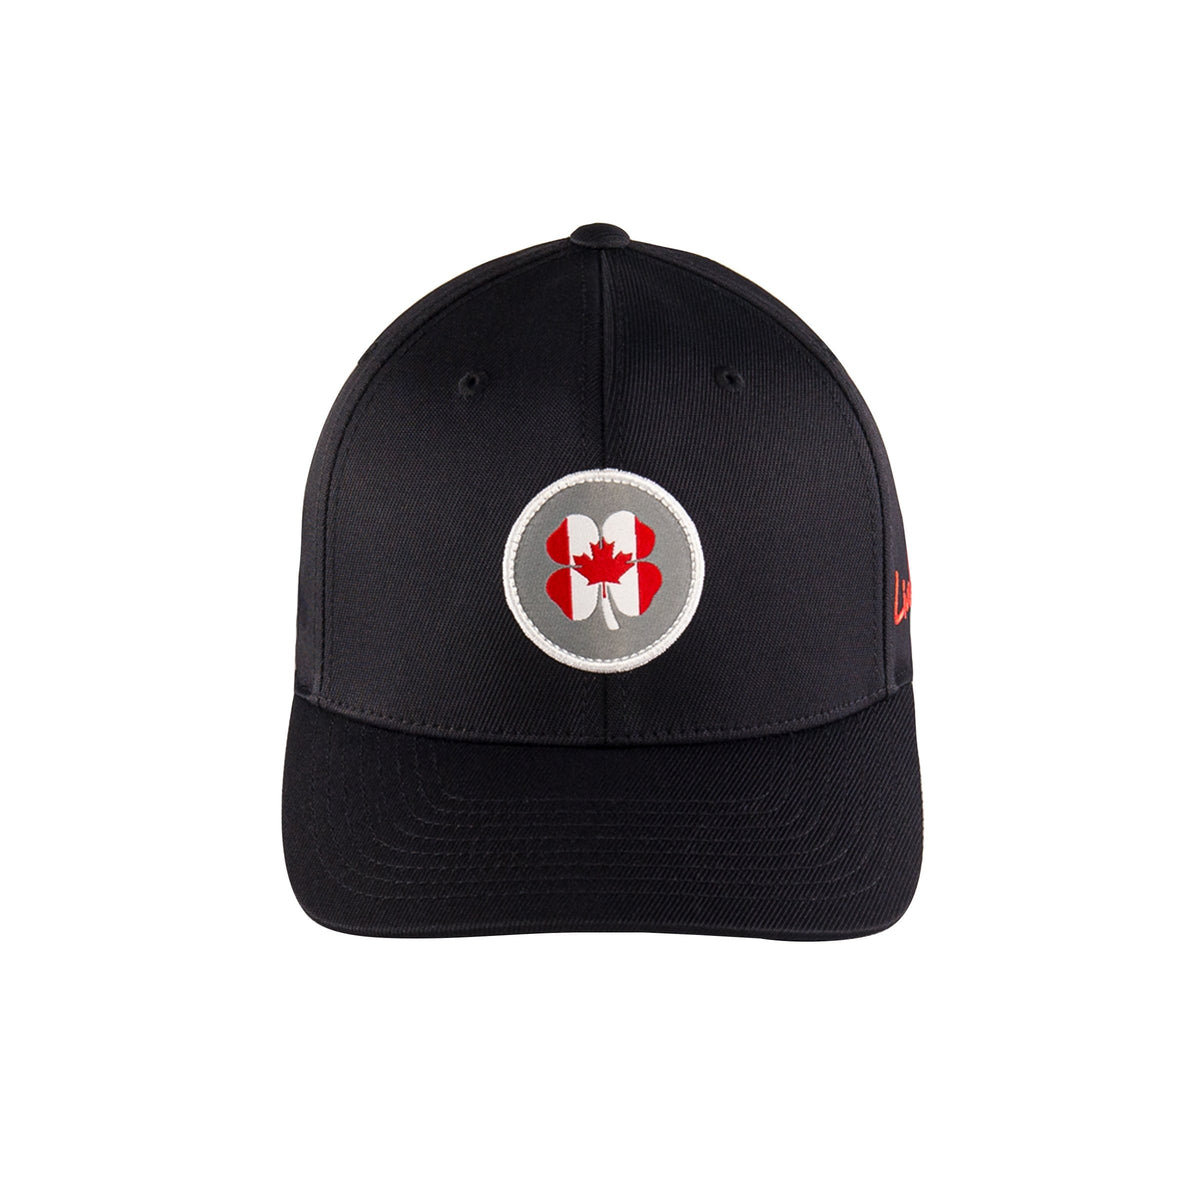 Black Clover Baseball Caps Canada Flag Nation - Snapback equestrian team apparel online tack store mobile tack store custom farm apparel custom show stable clothing equestrian lifestyle horse show clothing riding clothes horses equestrian tack store